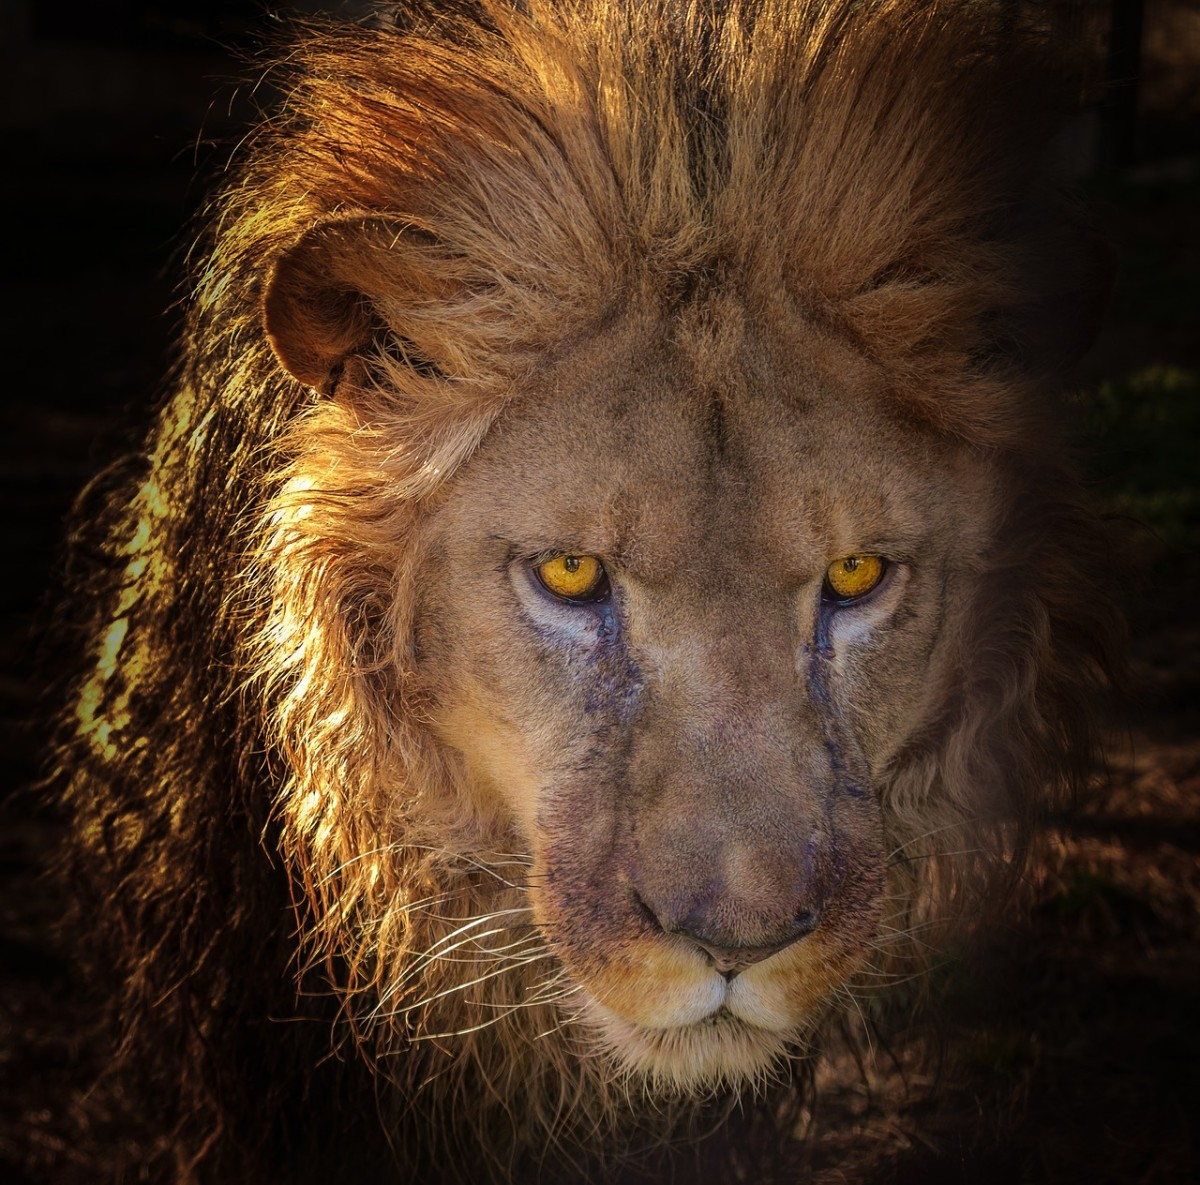 Symbolism and the Identity of Aslan in the Chronicles of Narnia